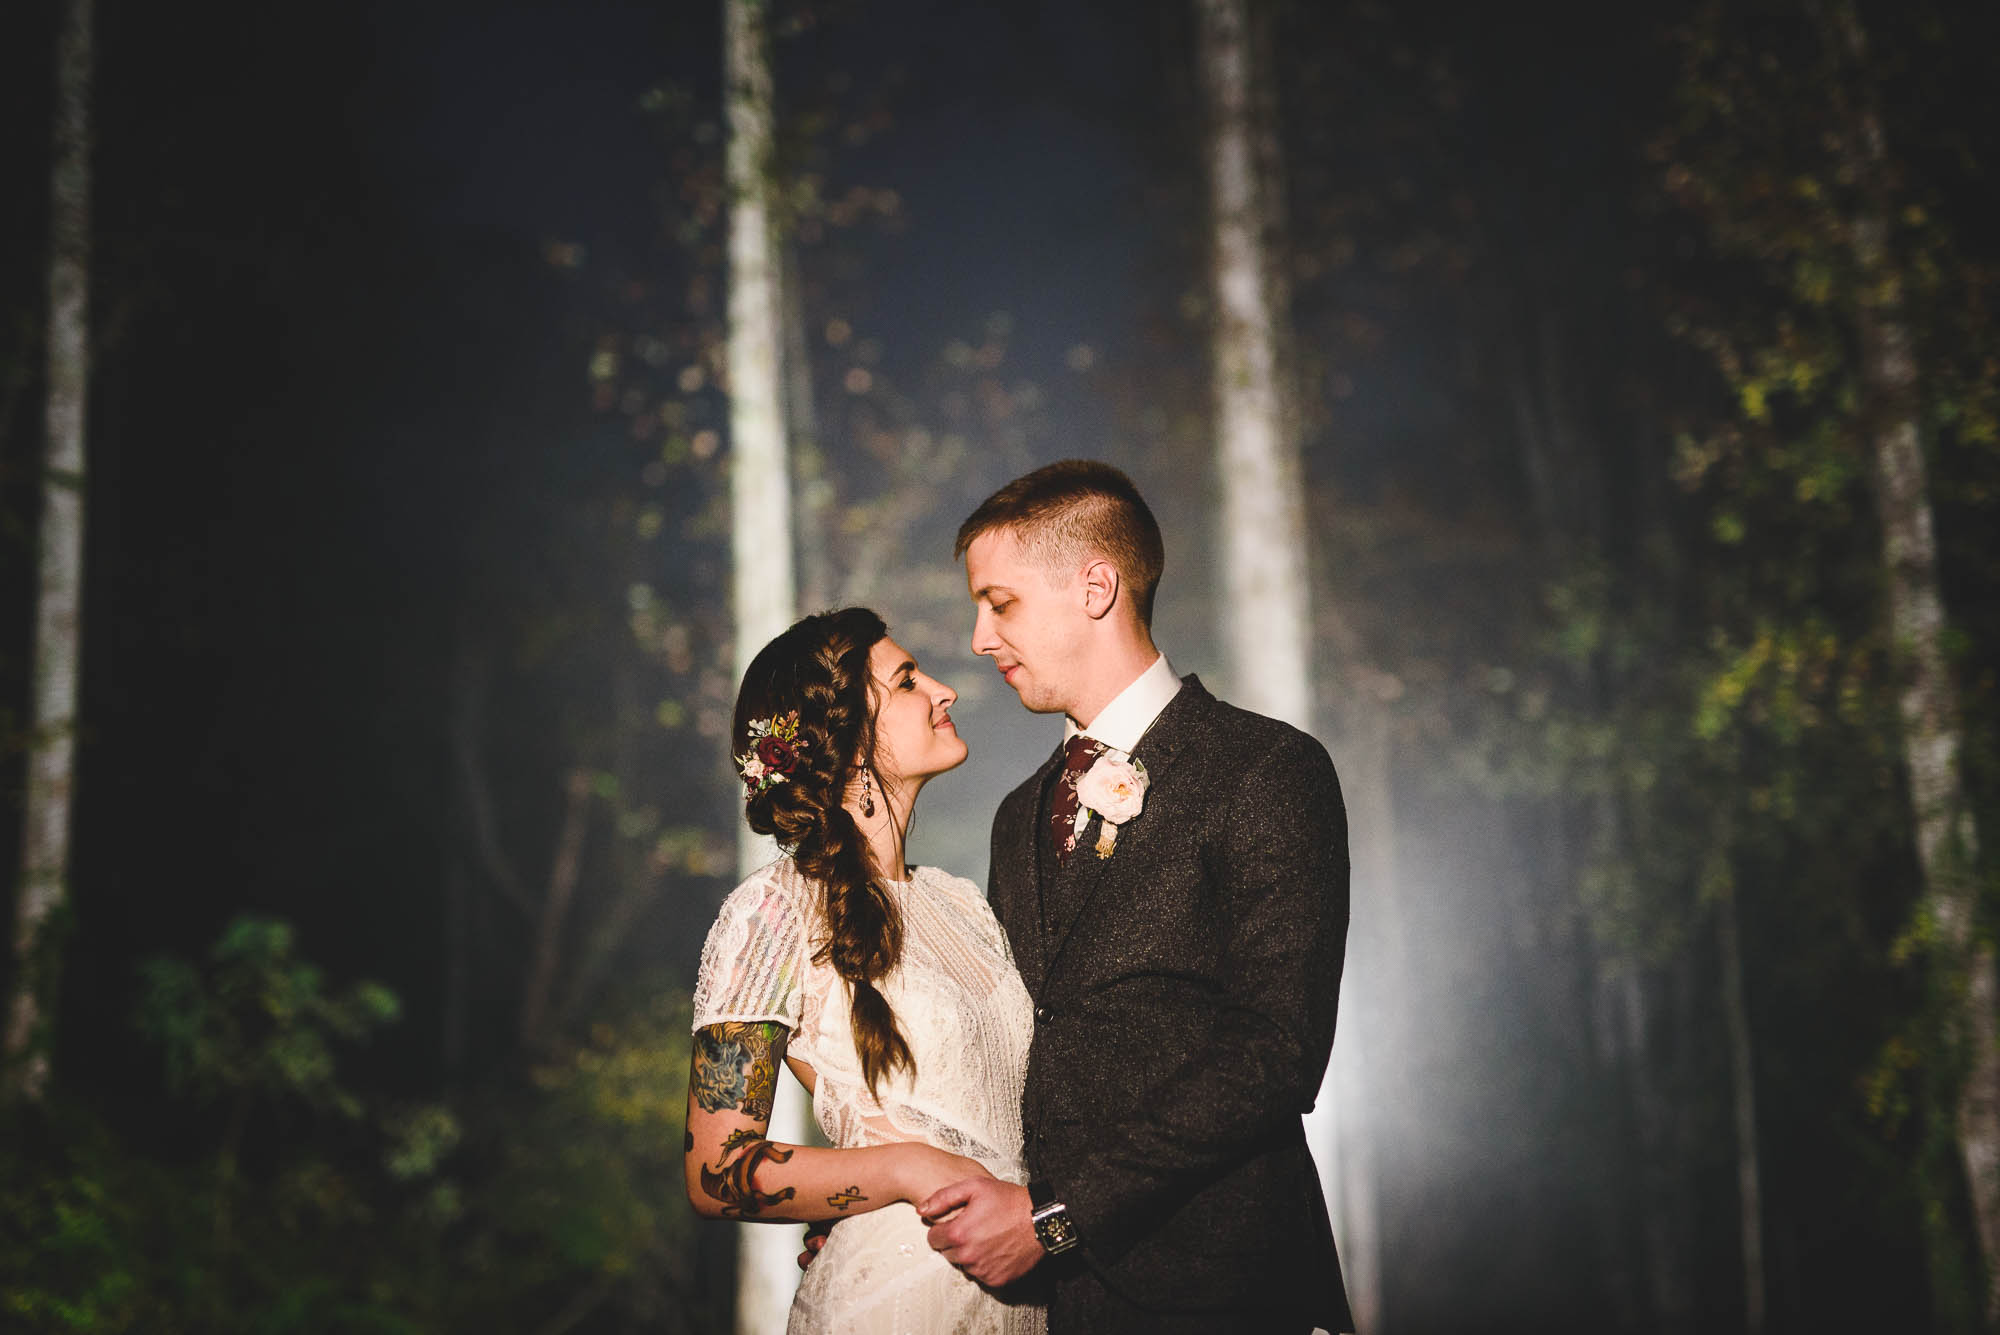 Foggy wedding photo